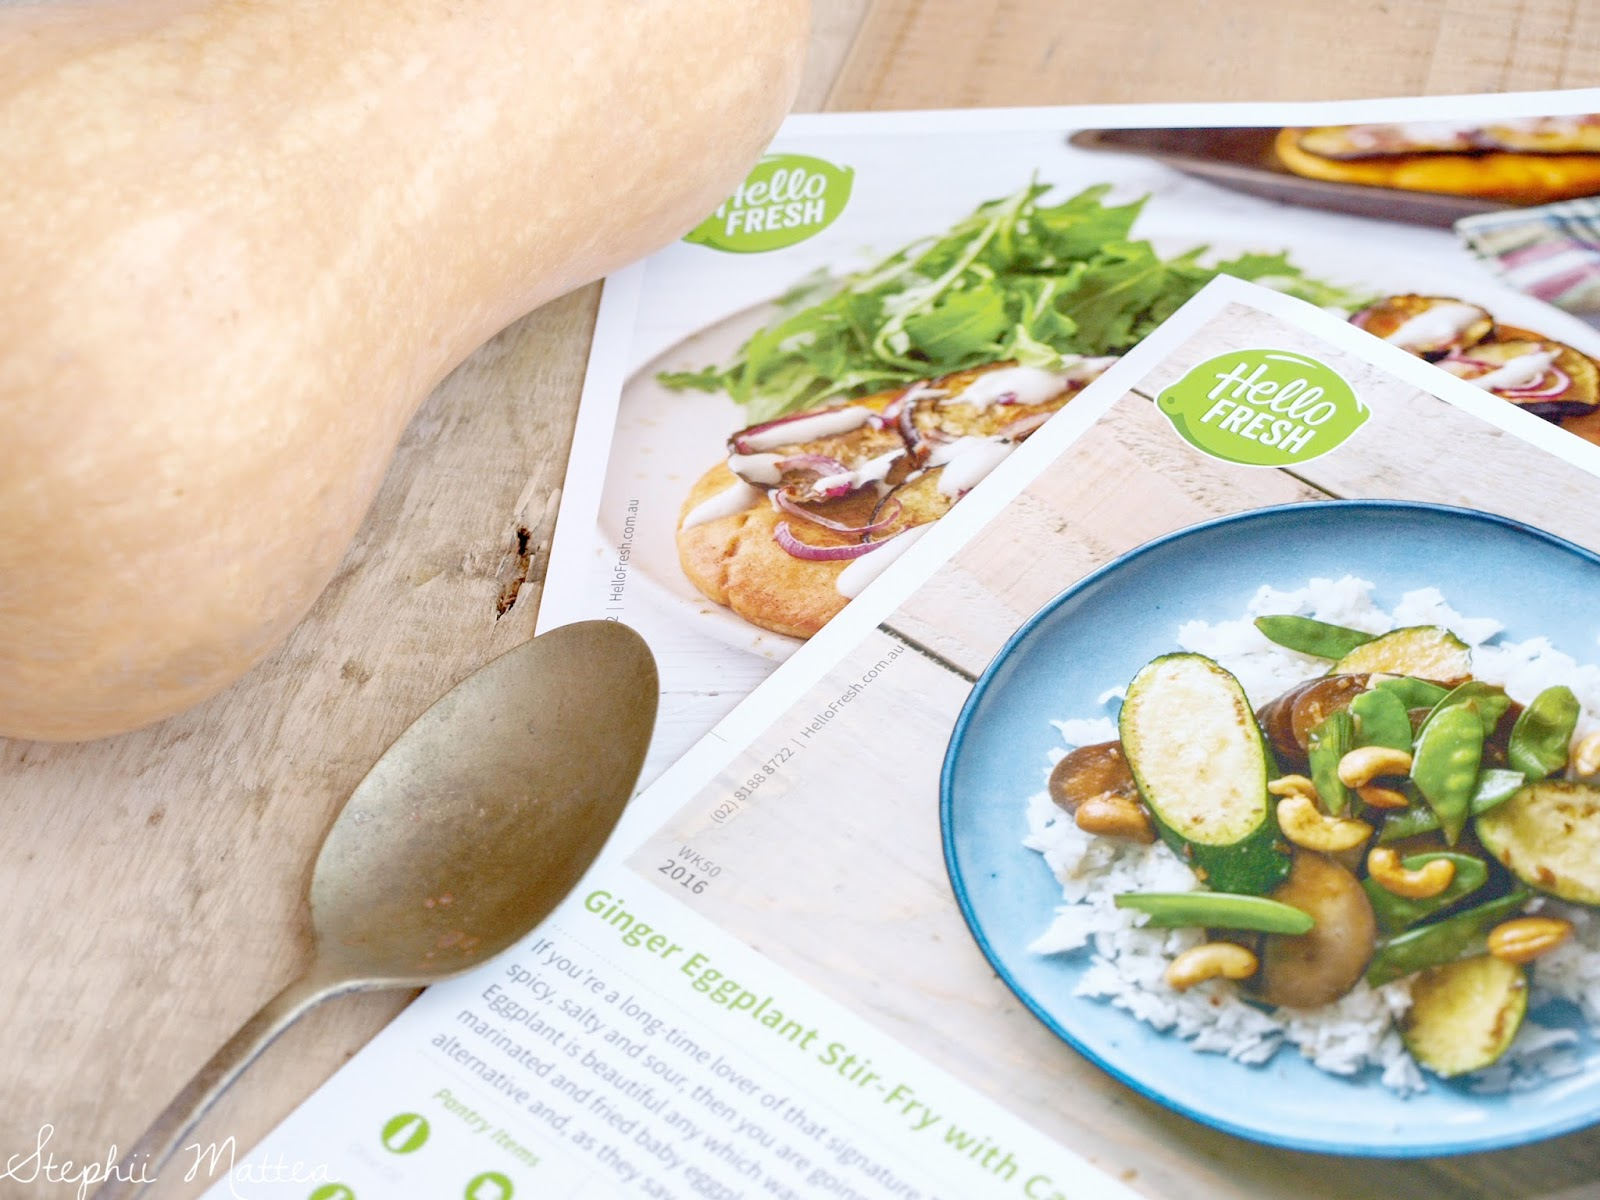 Hellofresh  Meal Kit Delivery Service Coupon Code Black Friday April